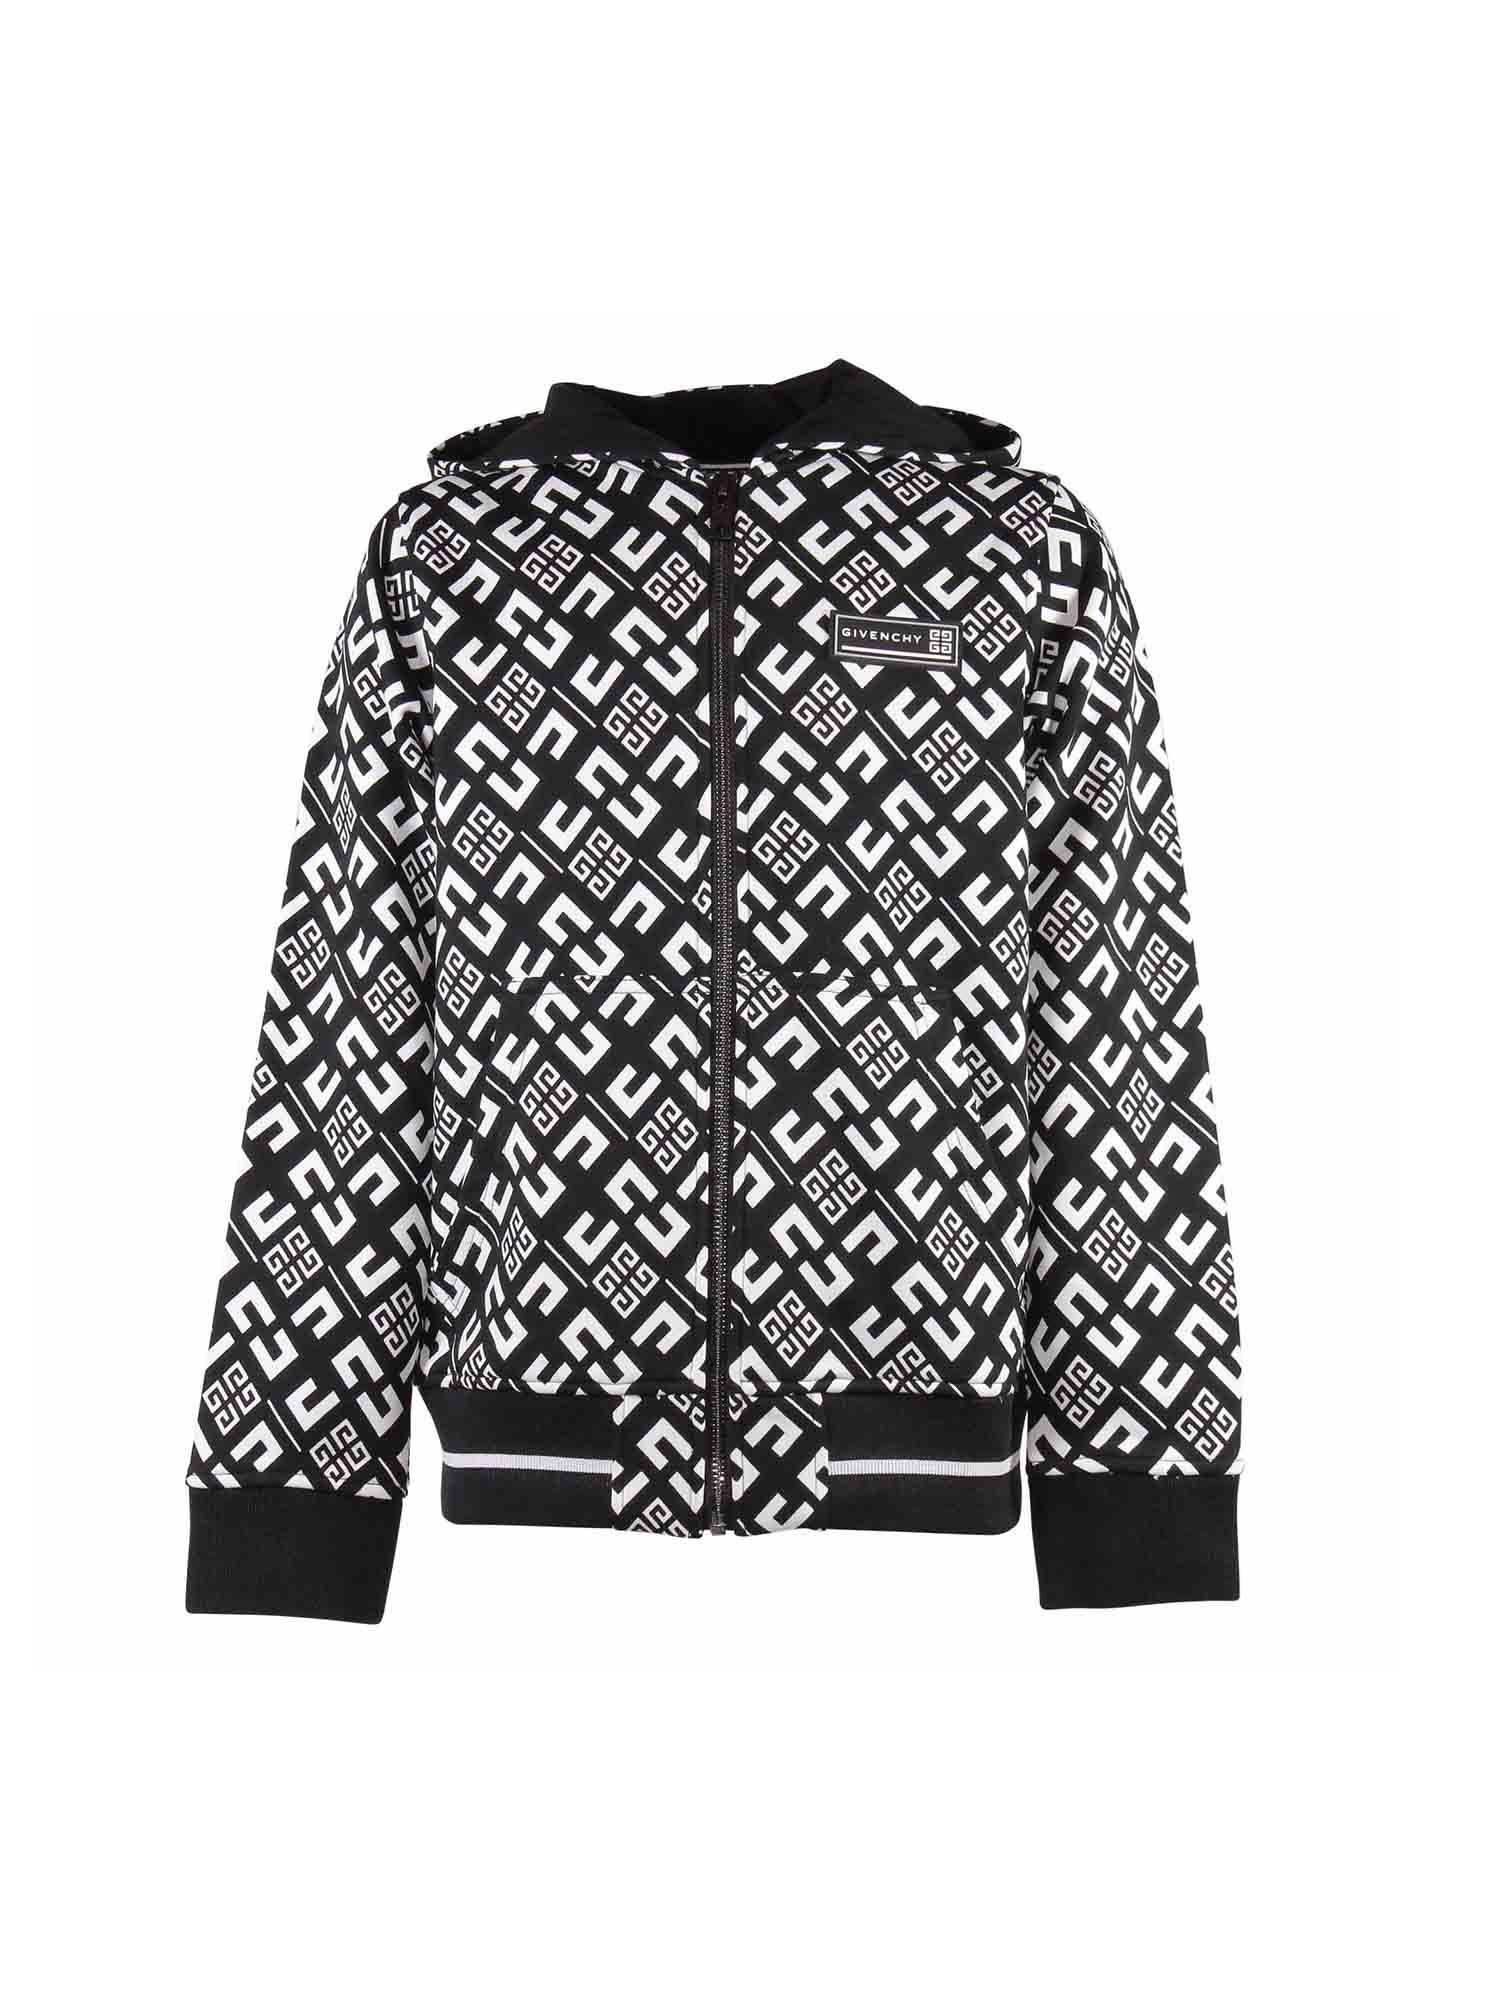 Givenchy Kids' Branded Hoodie In Black And White